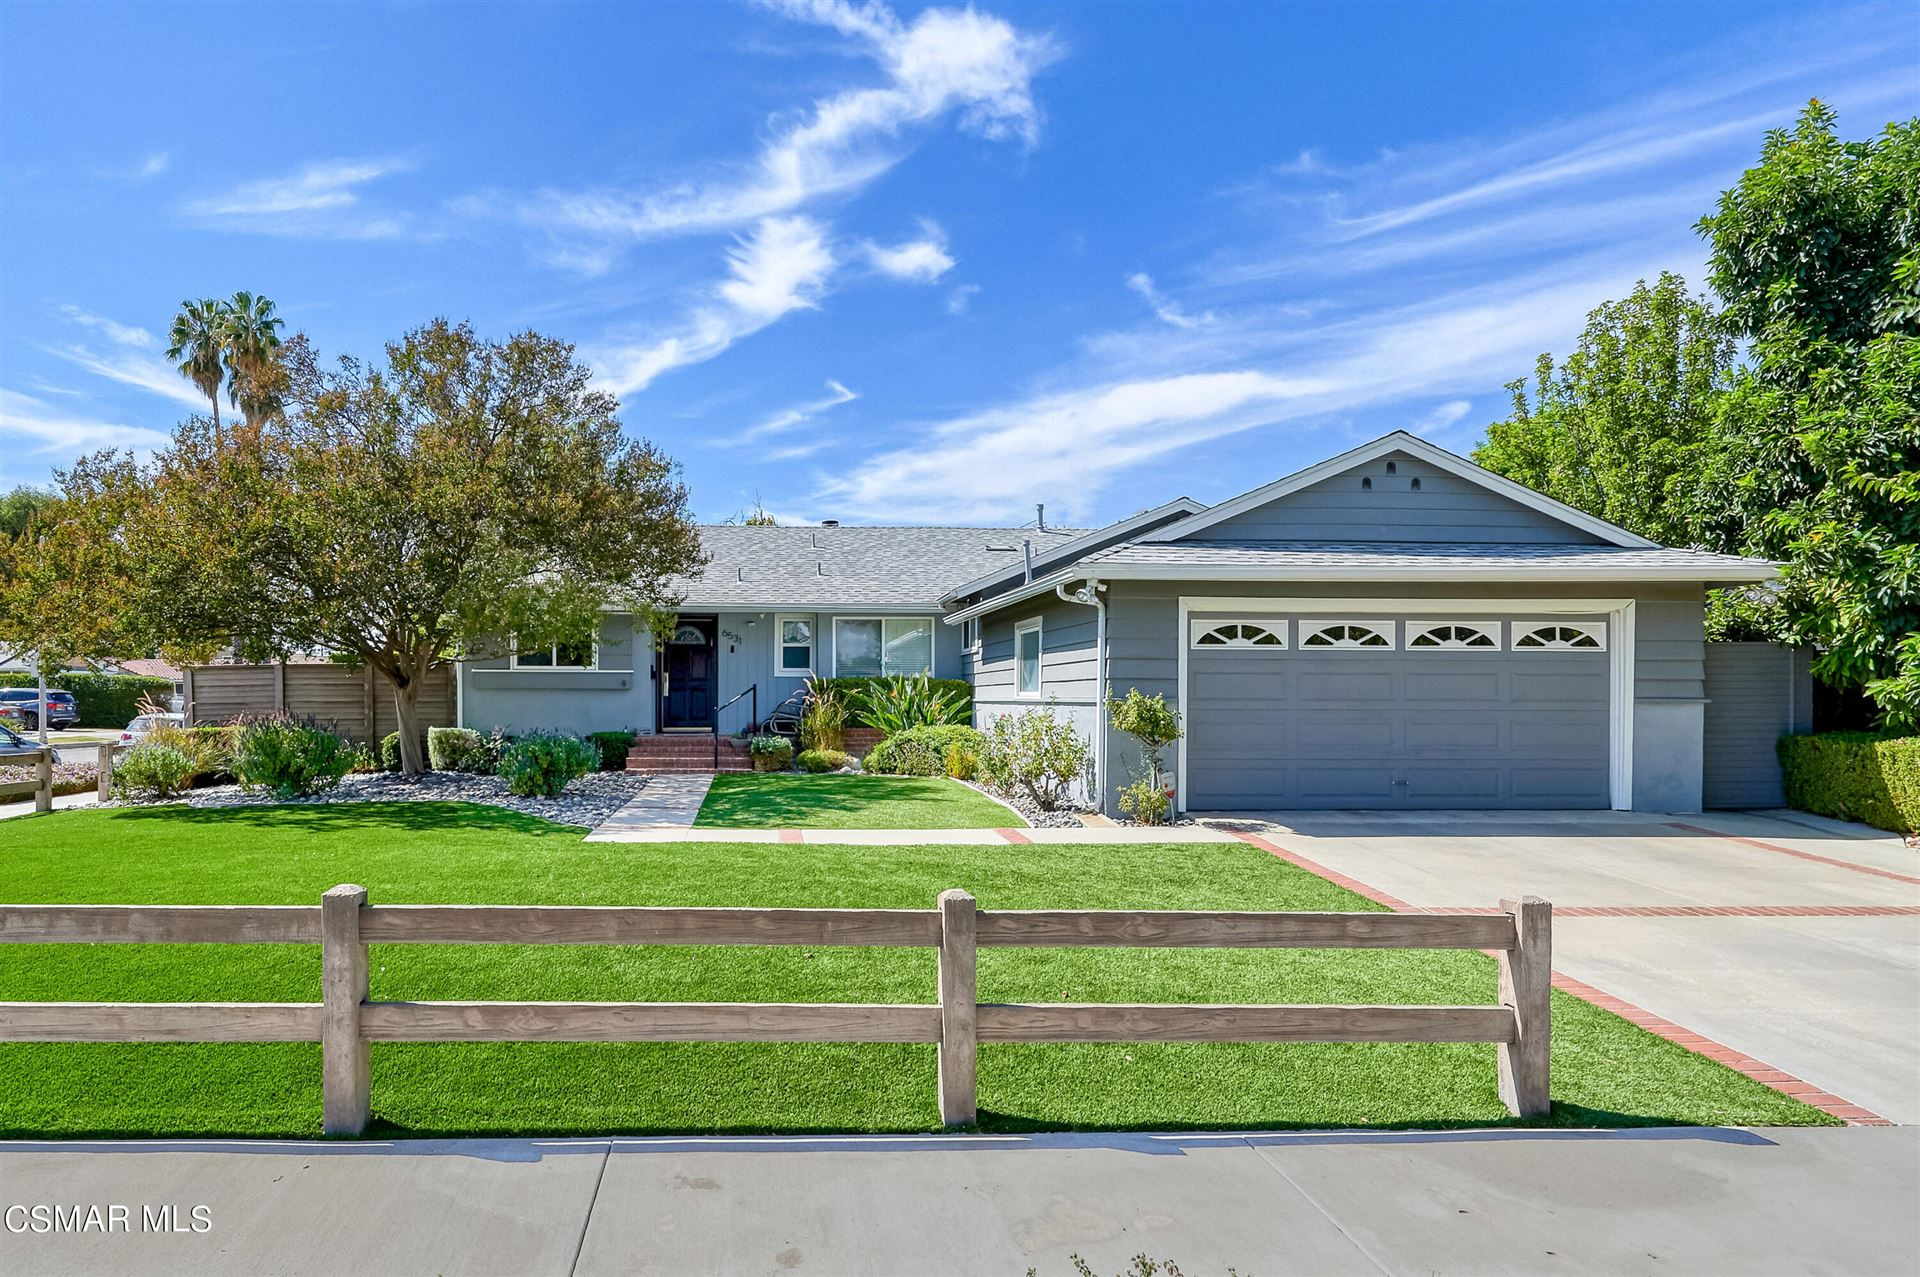 6531 Vicky Avenue, West Hills, CA 91307 - MLS#: 221005458